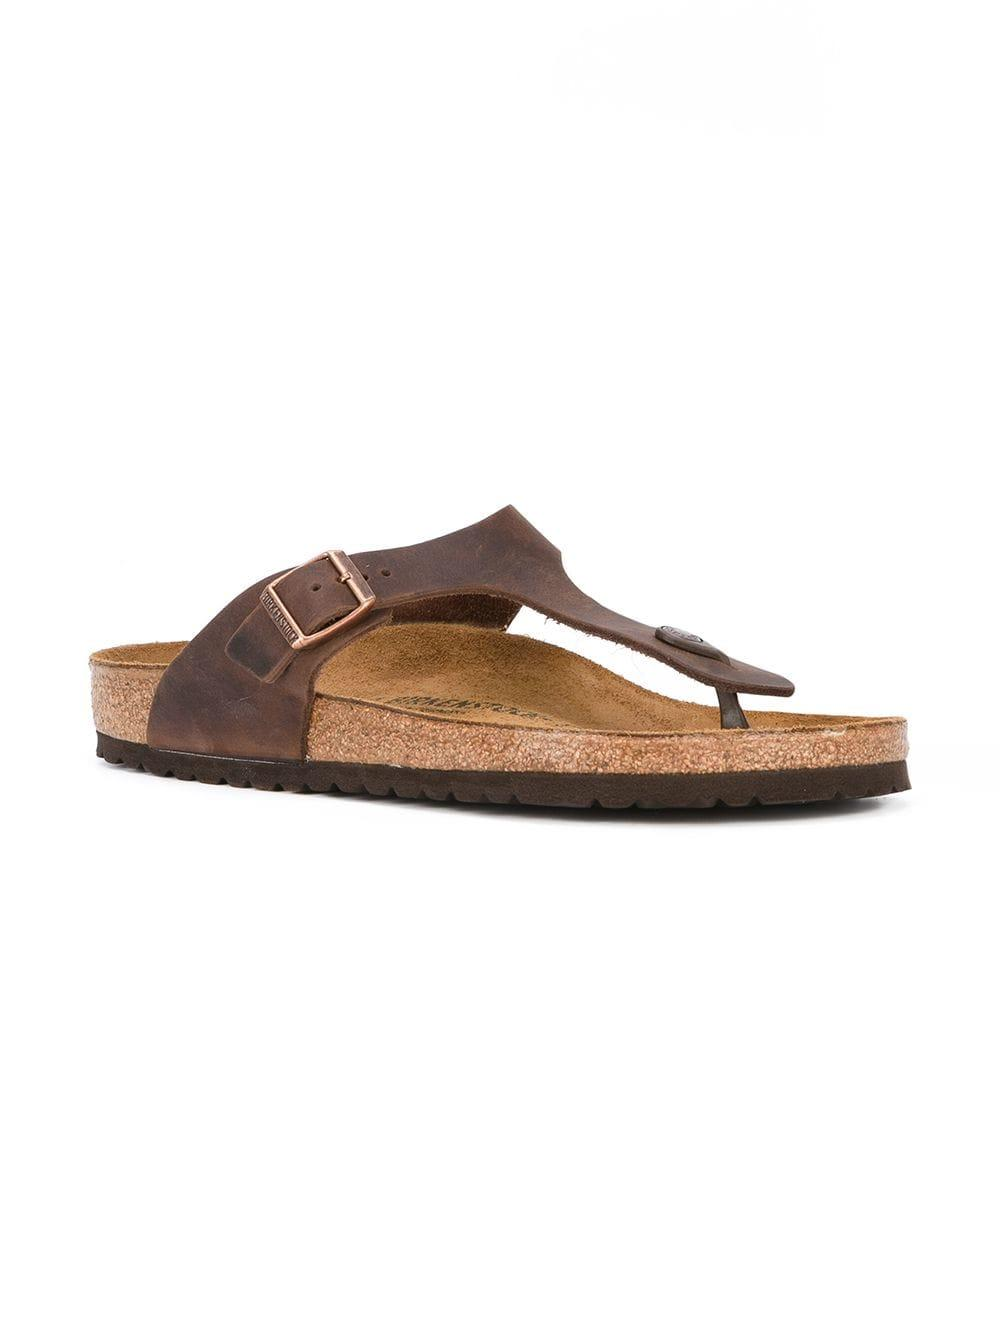 f46165c5160 Lyst - Birkenstock T-bar Sandals in Brown for Men